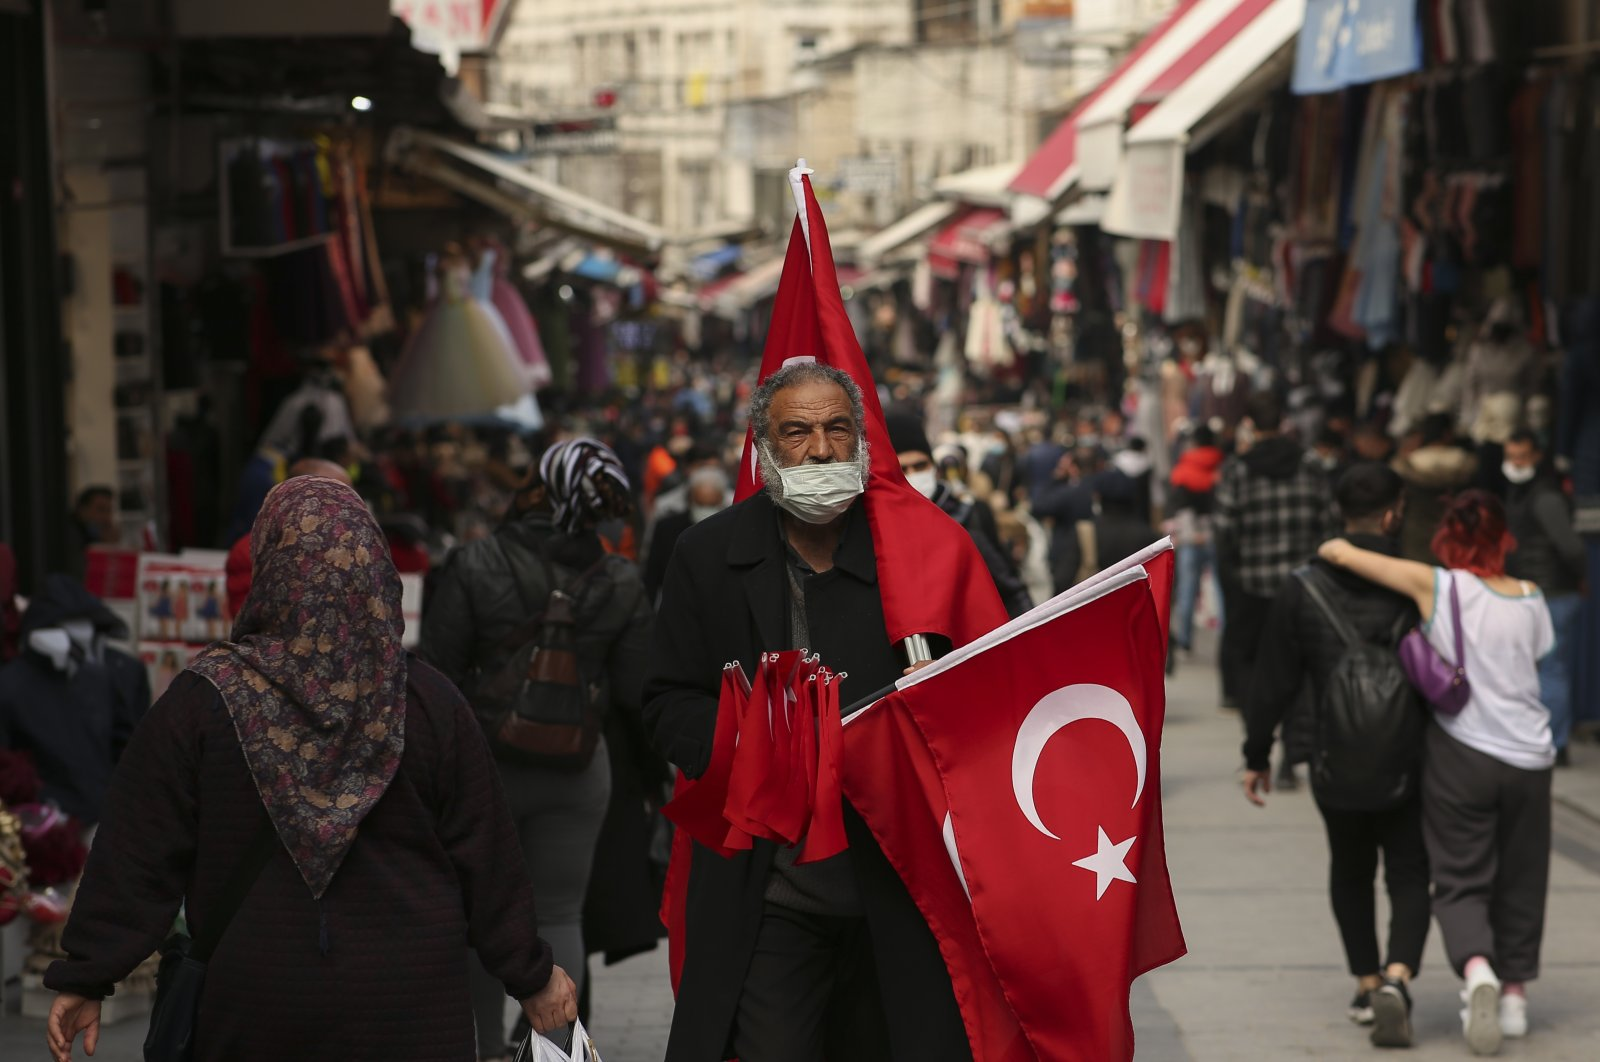 A vendor offers Turklish flags for sale at an open market Istanbul, Monday, March 22, 2021. (AP Photo)